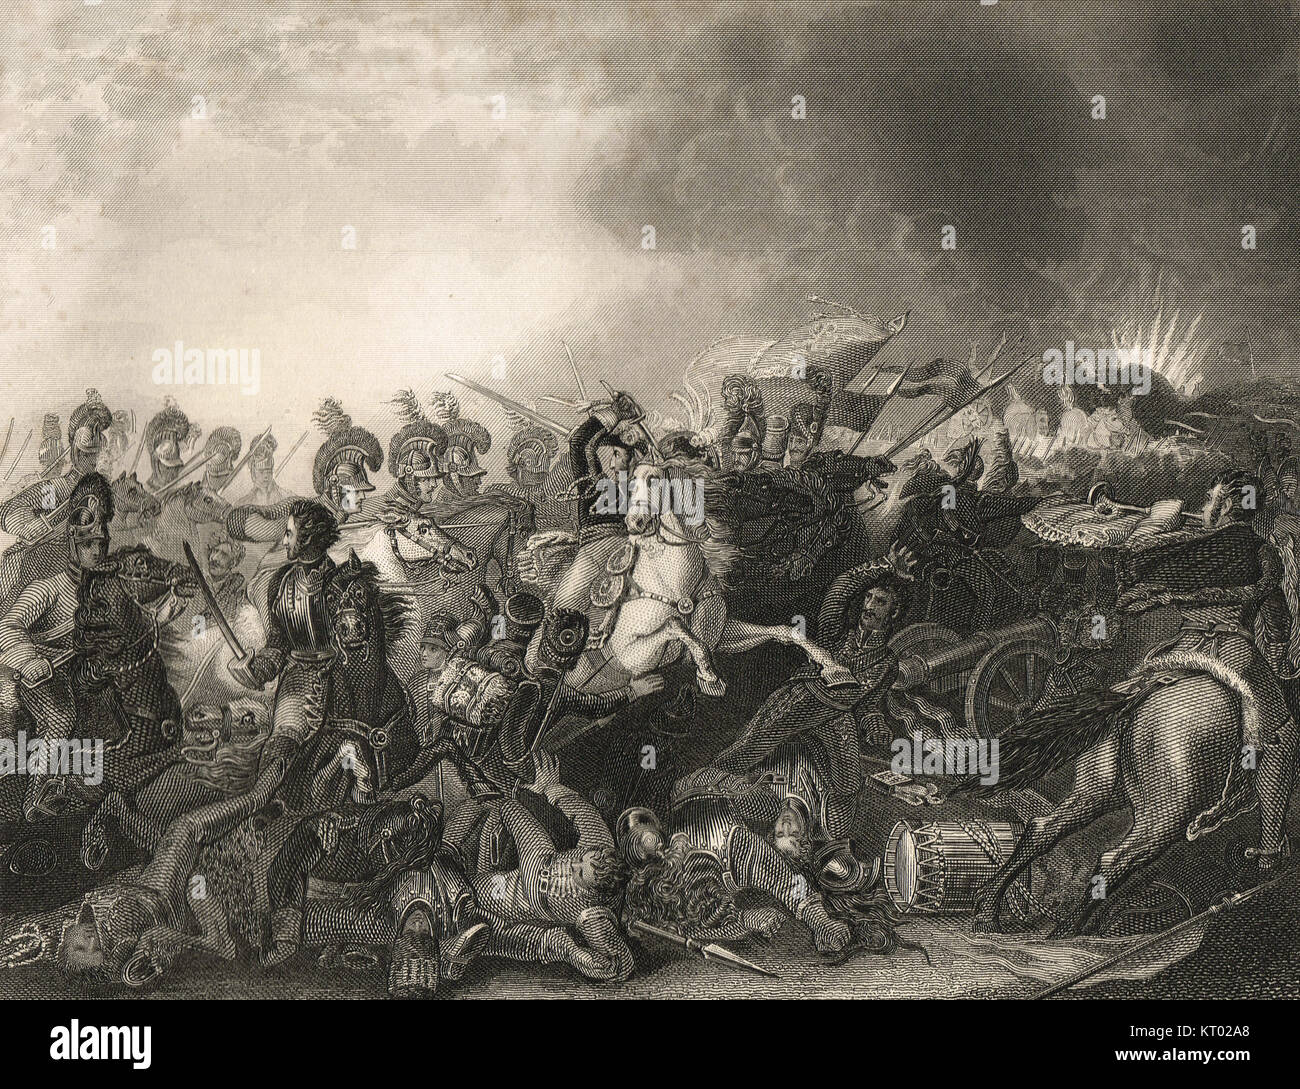 Decisive charge of the Life Guards, Battle of Waterloo, 18 June 1815 - Stock Image